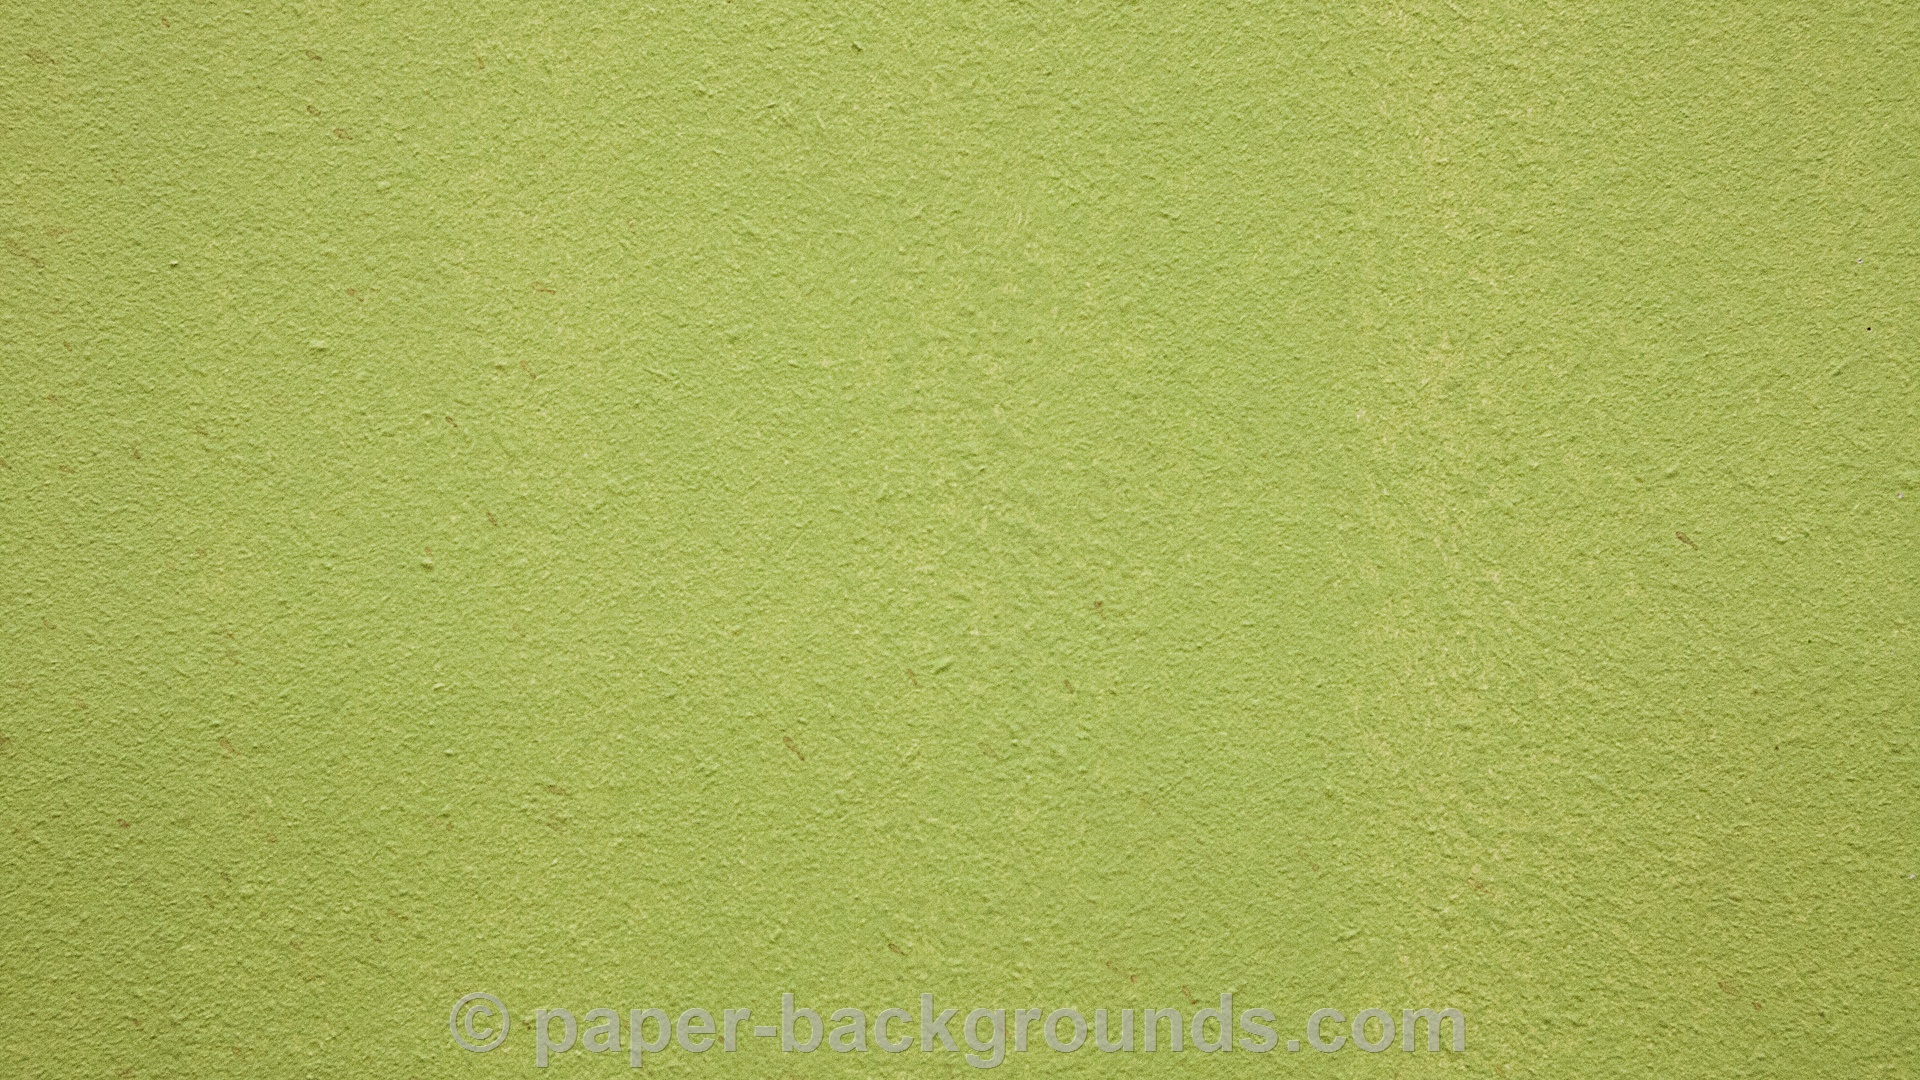 Paper Backgrounds | Concrete Textures | Royalty Free HD ...